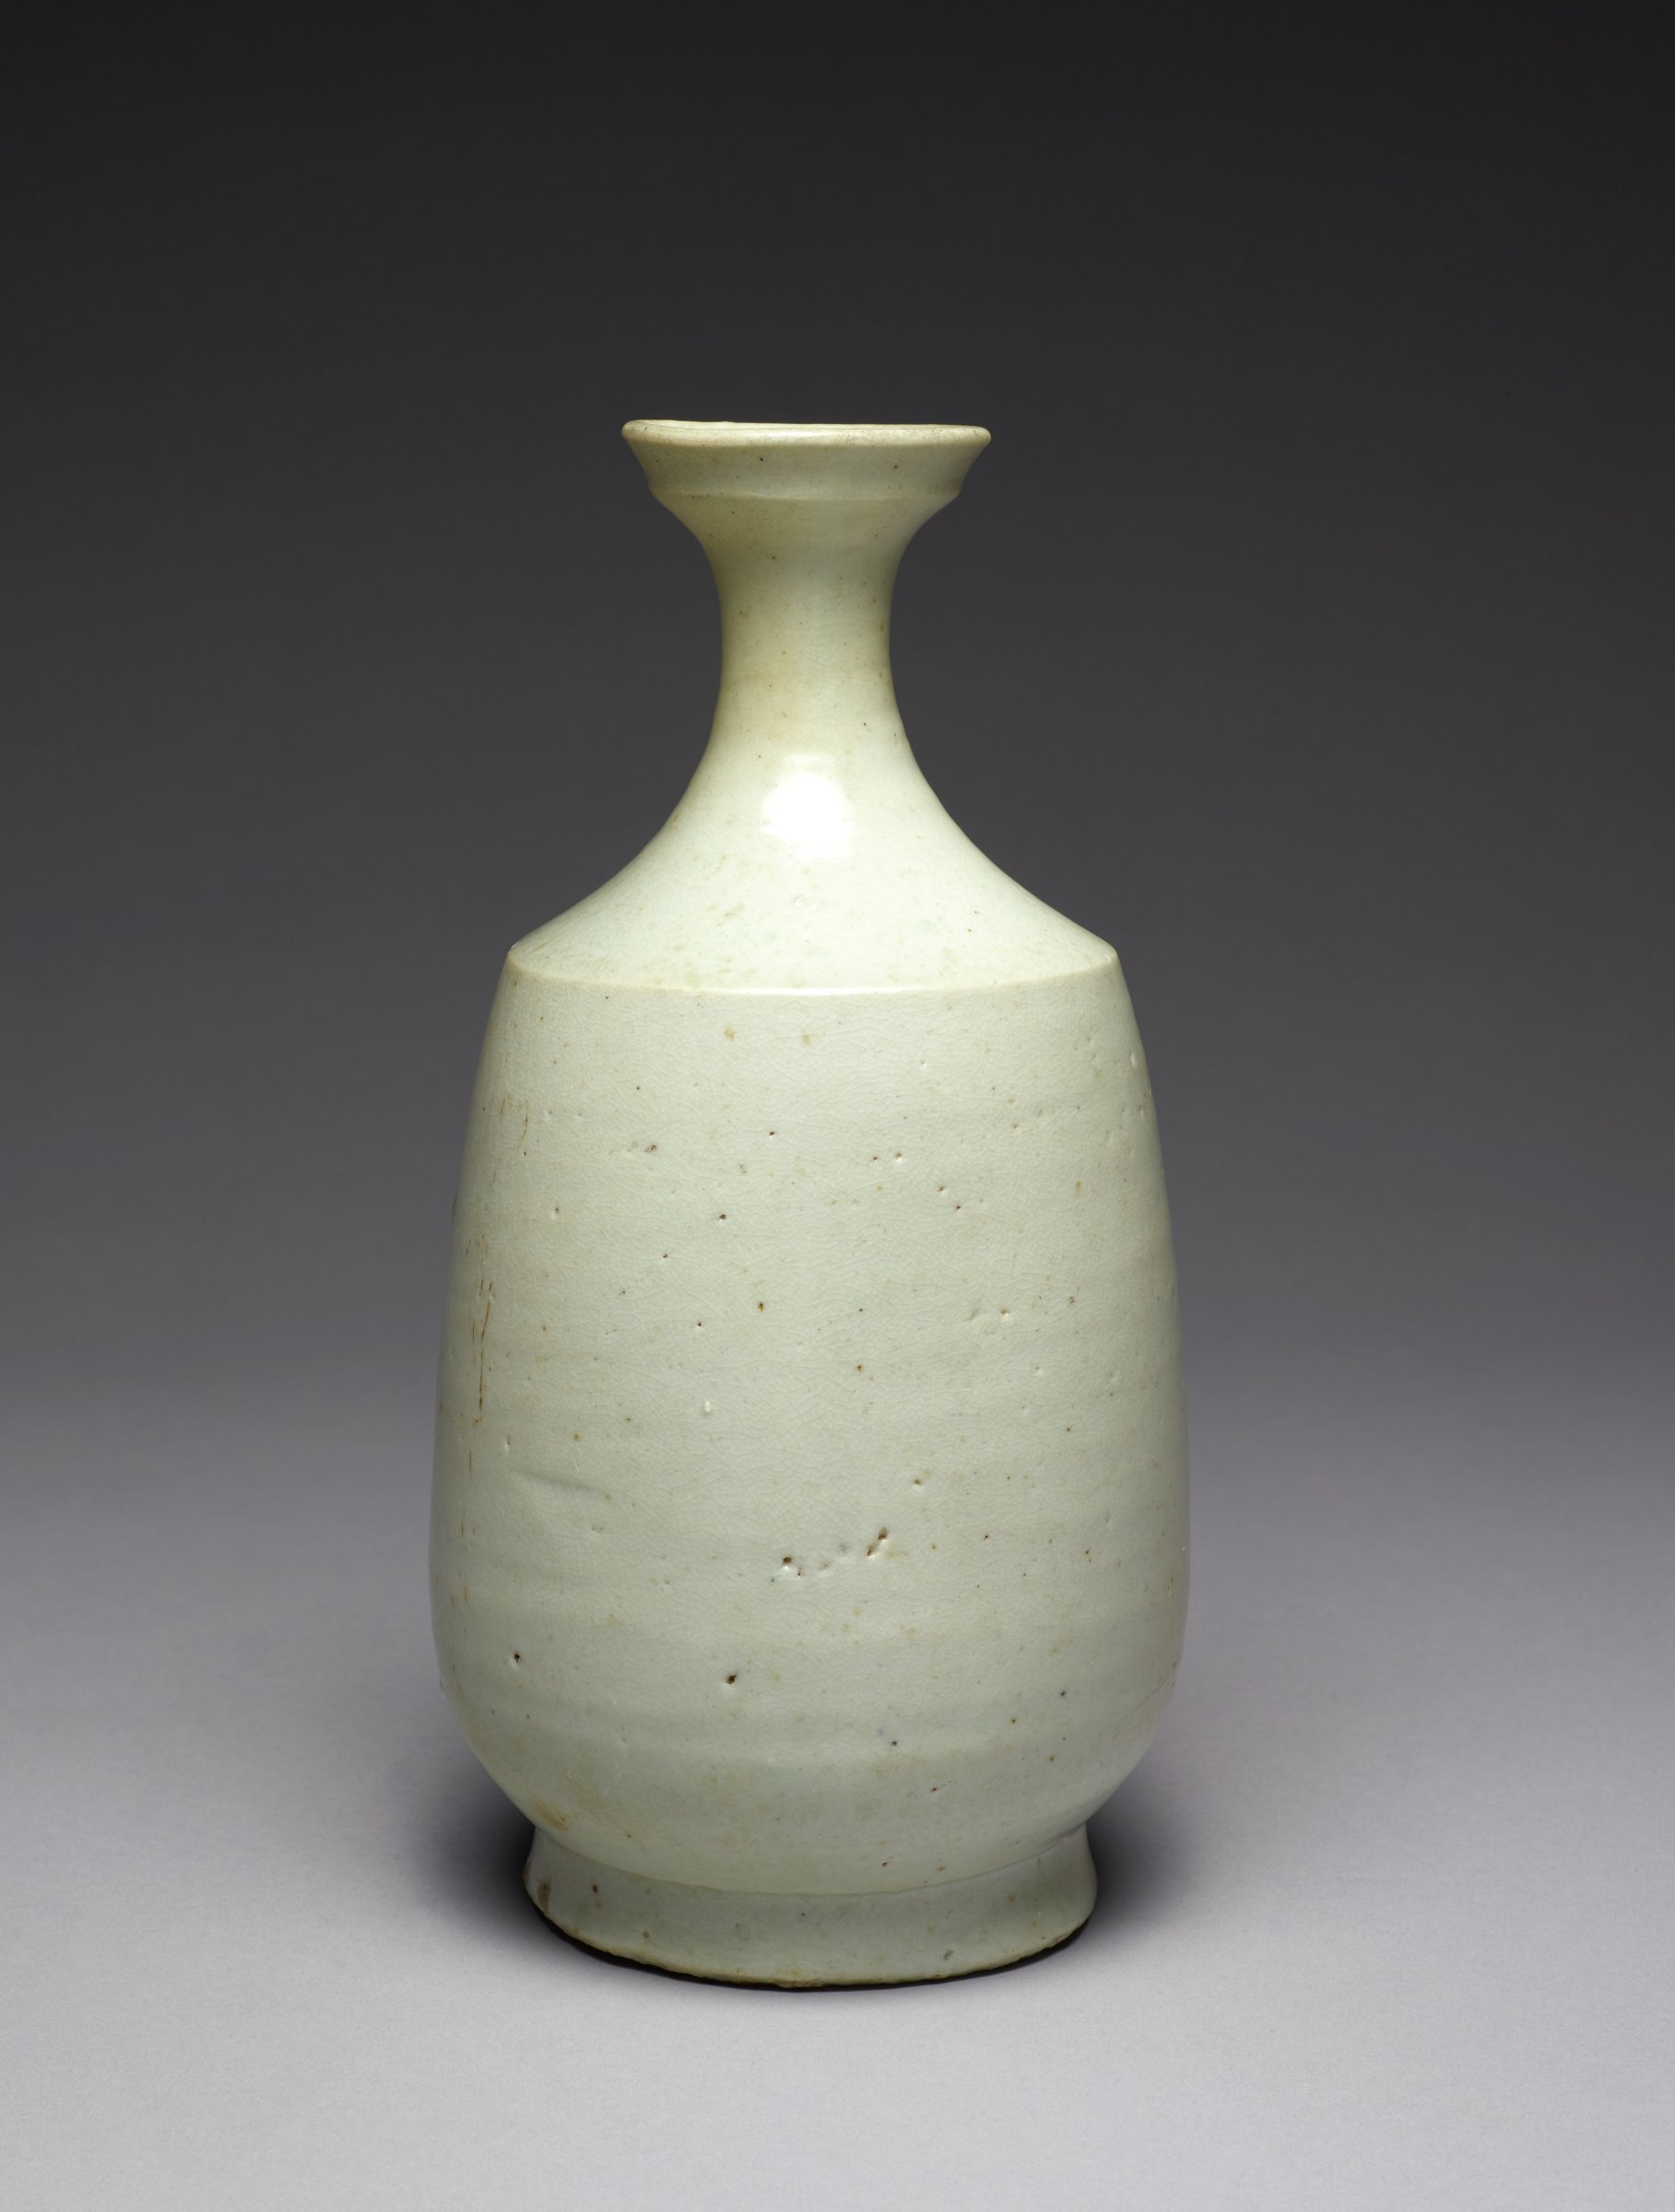 Slightly conical form with angular shoulder top with a dish mouth, supported on splayed footring; free of decoration, covered in whitish glaze; gritty footring from firing. Nice weight. Five glaze deposit spotting around shoulder.